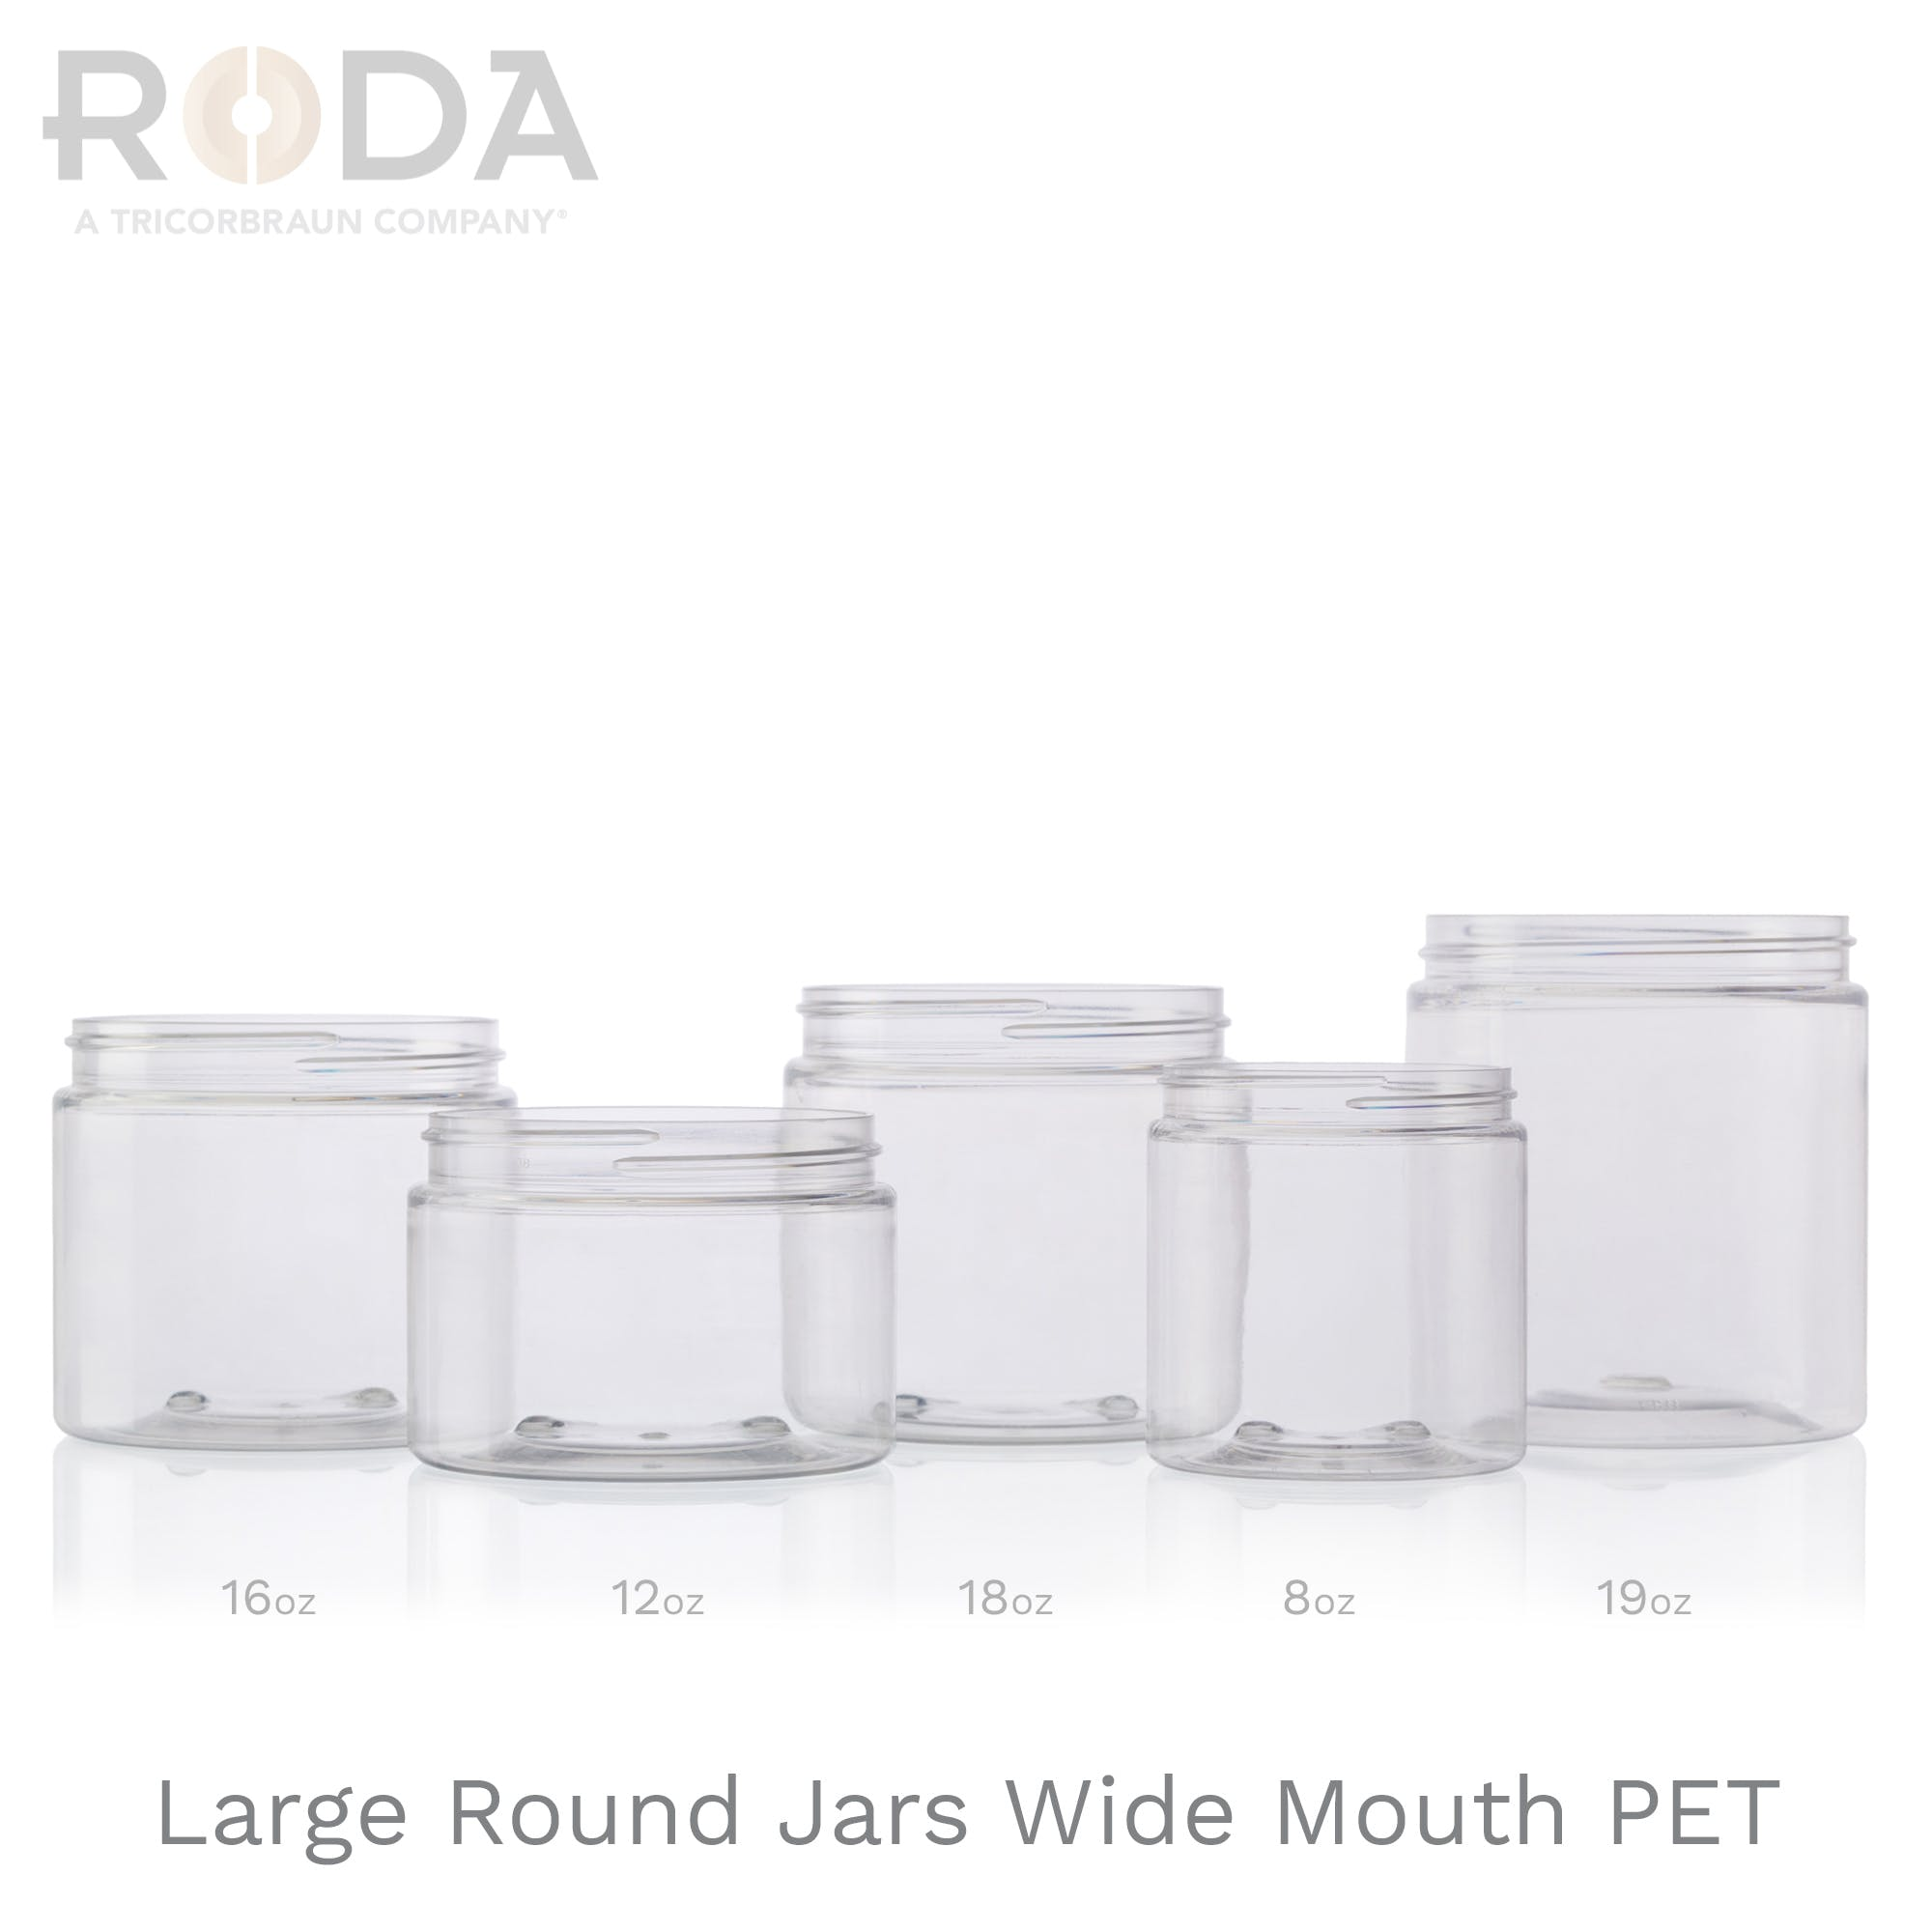 Large Round Jars Wide Mouth PET